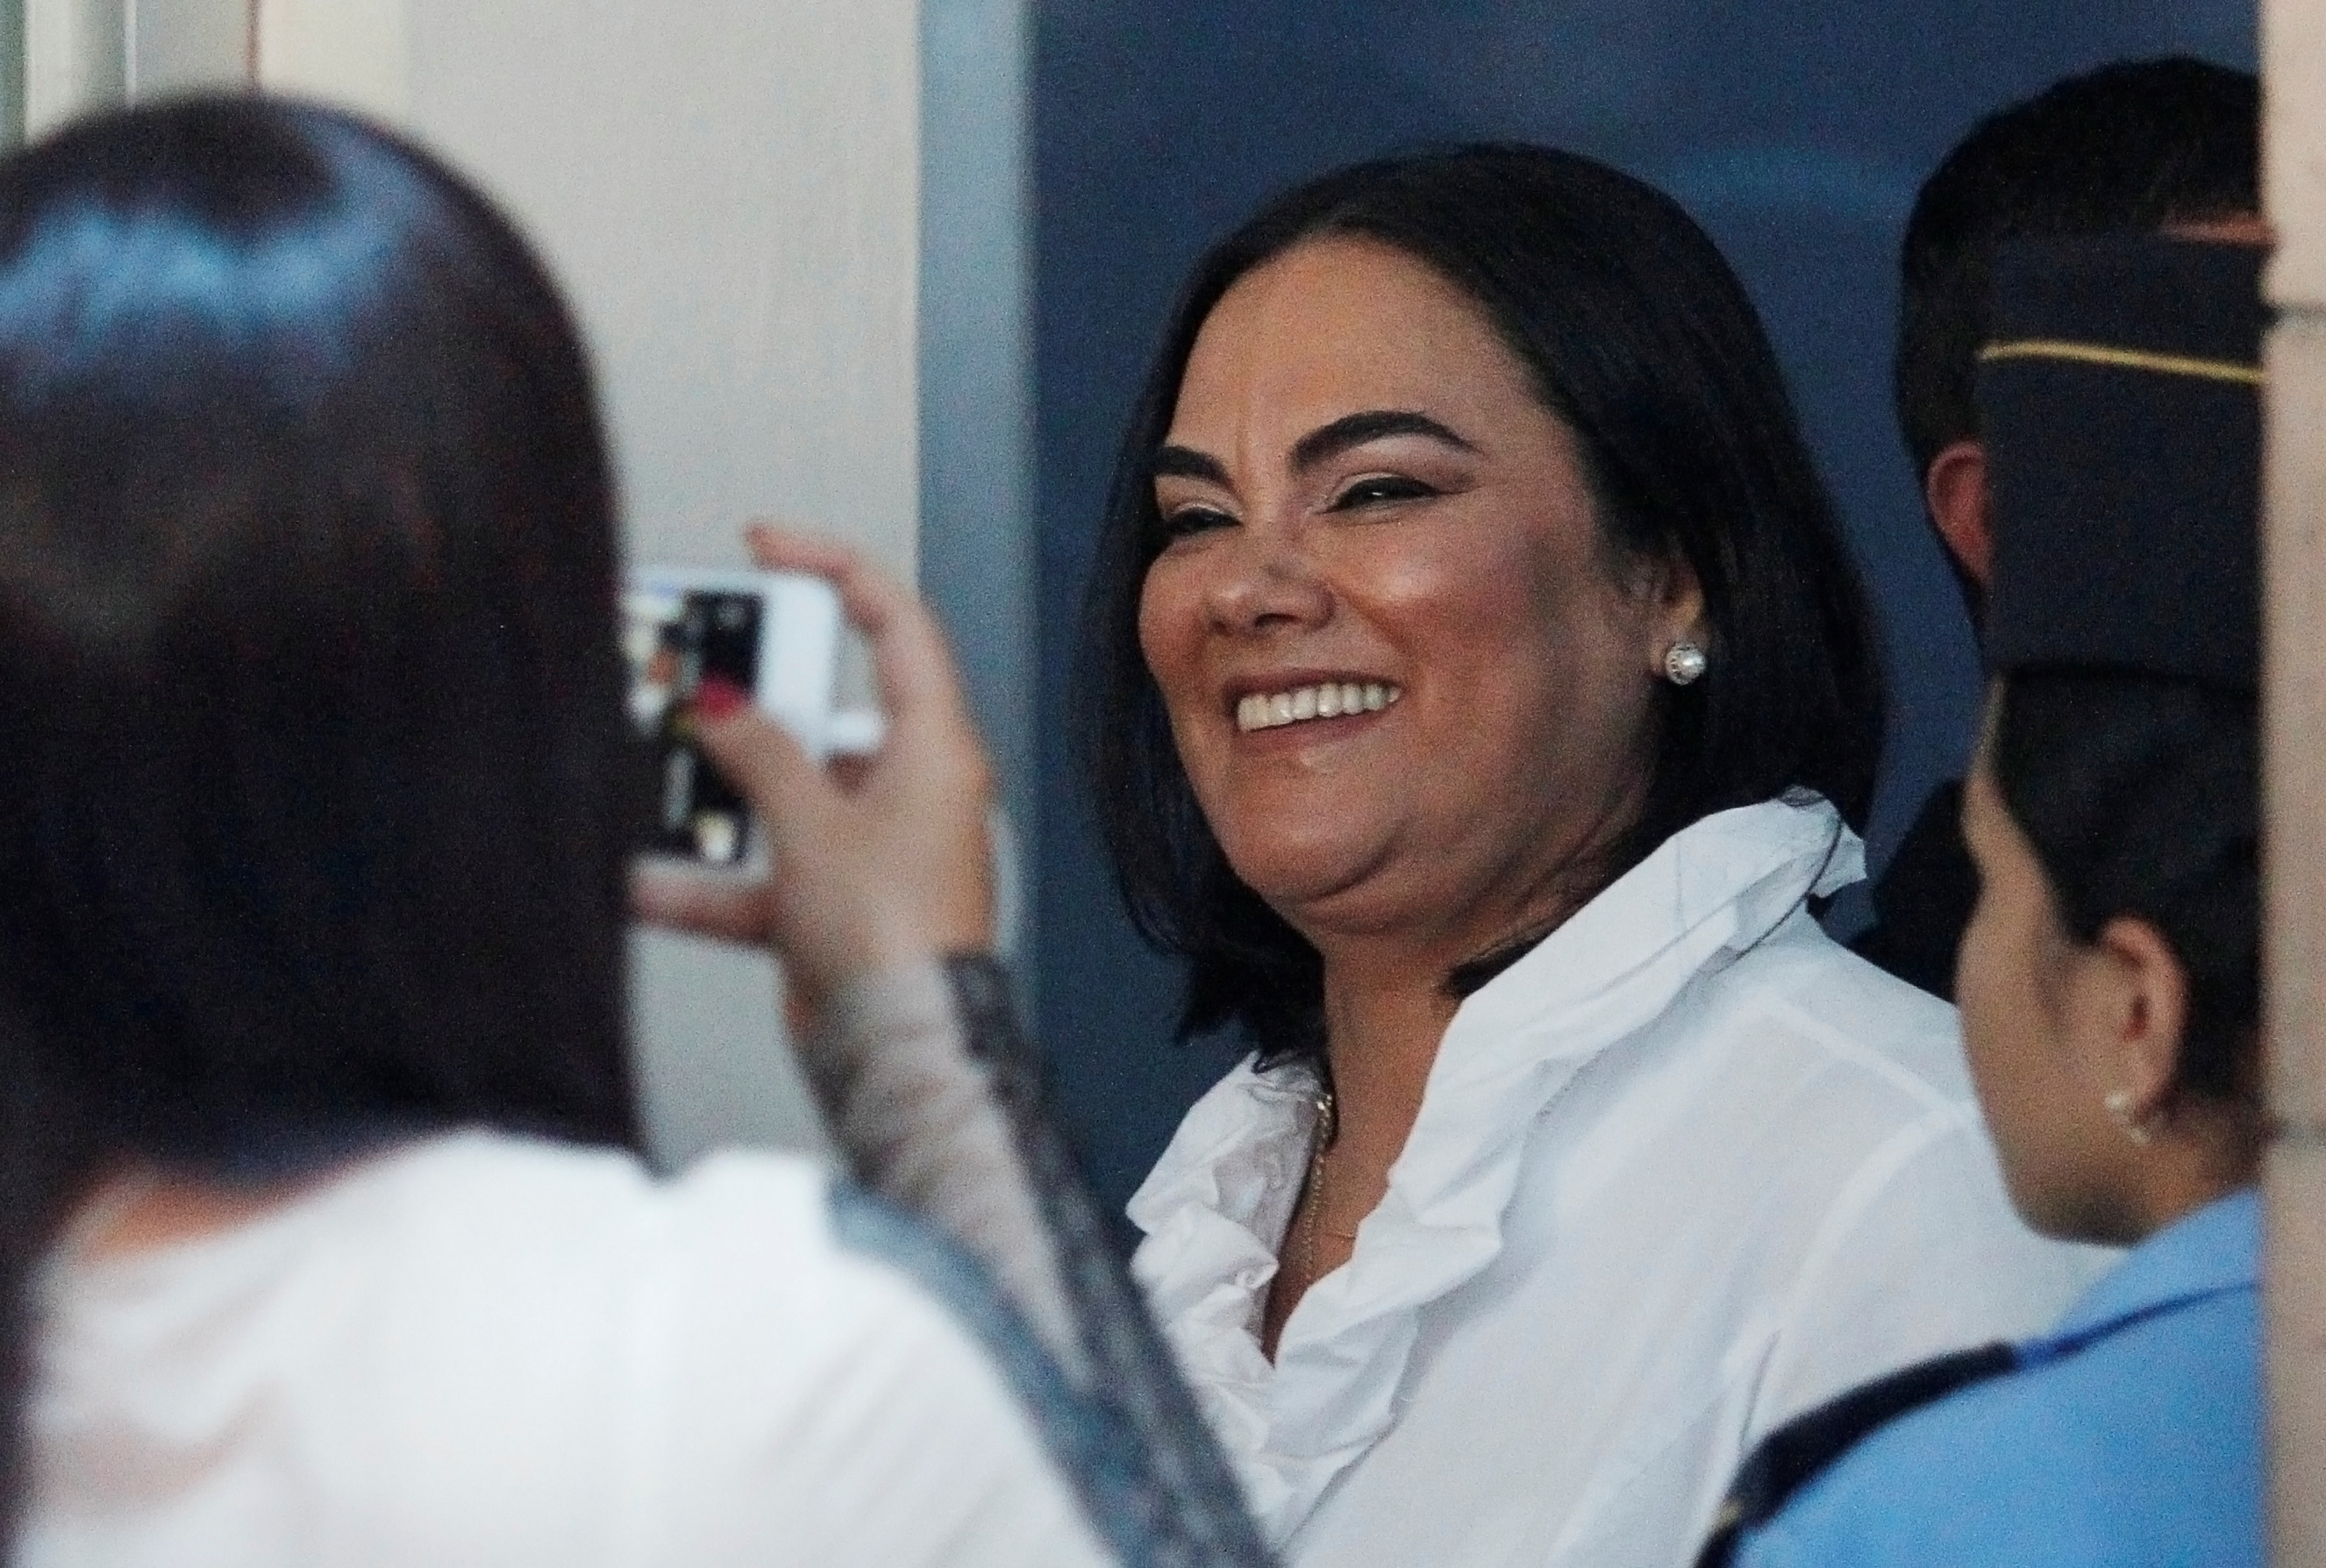 Former first lady Rosa Elena Bonilla de Lobo arrives at a court hearing to face graft charges, in Tegucigalpa